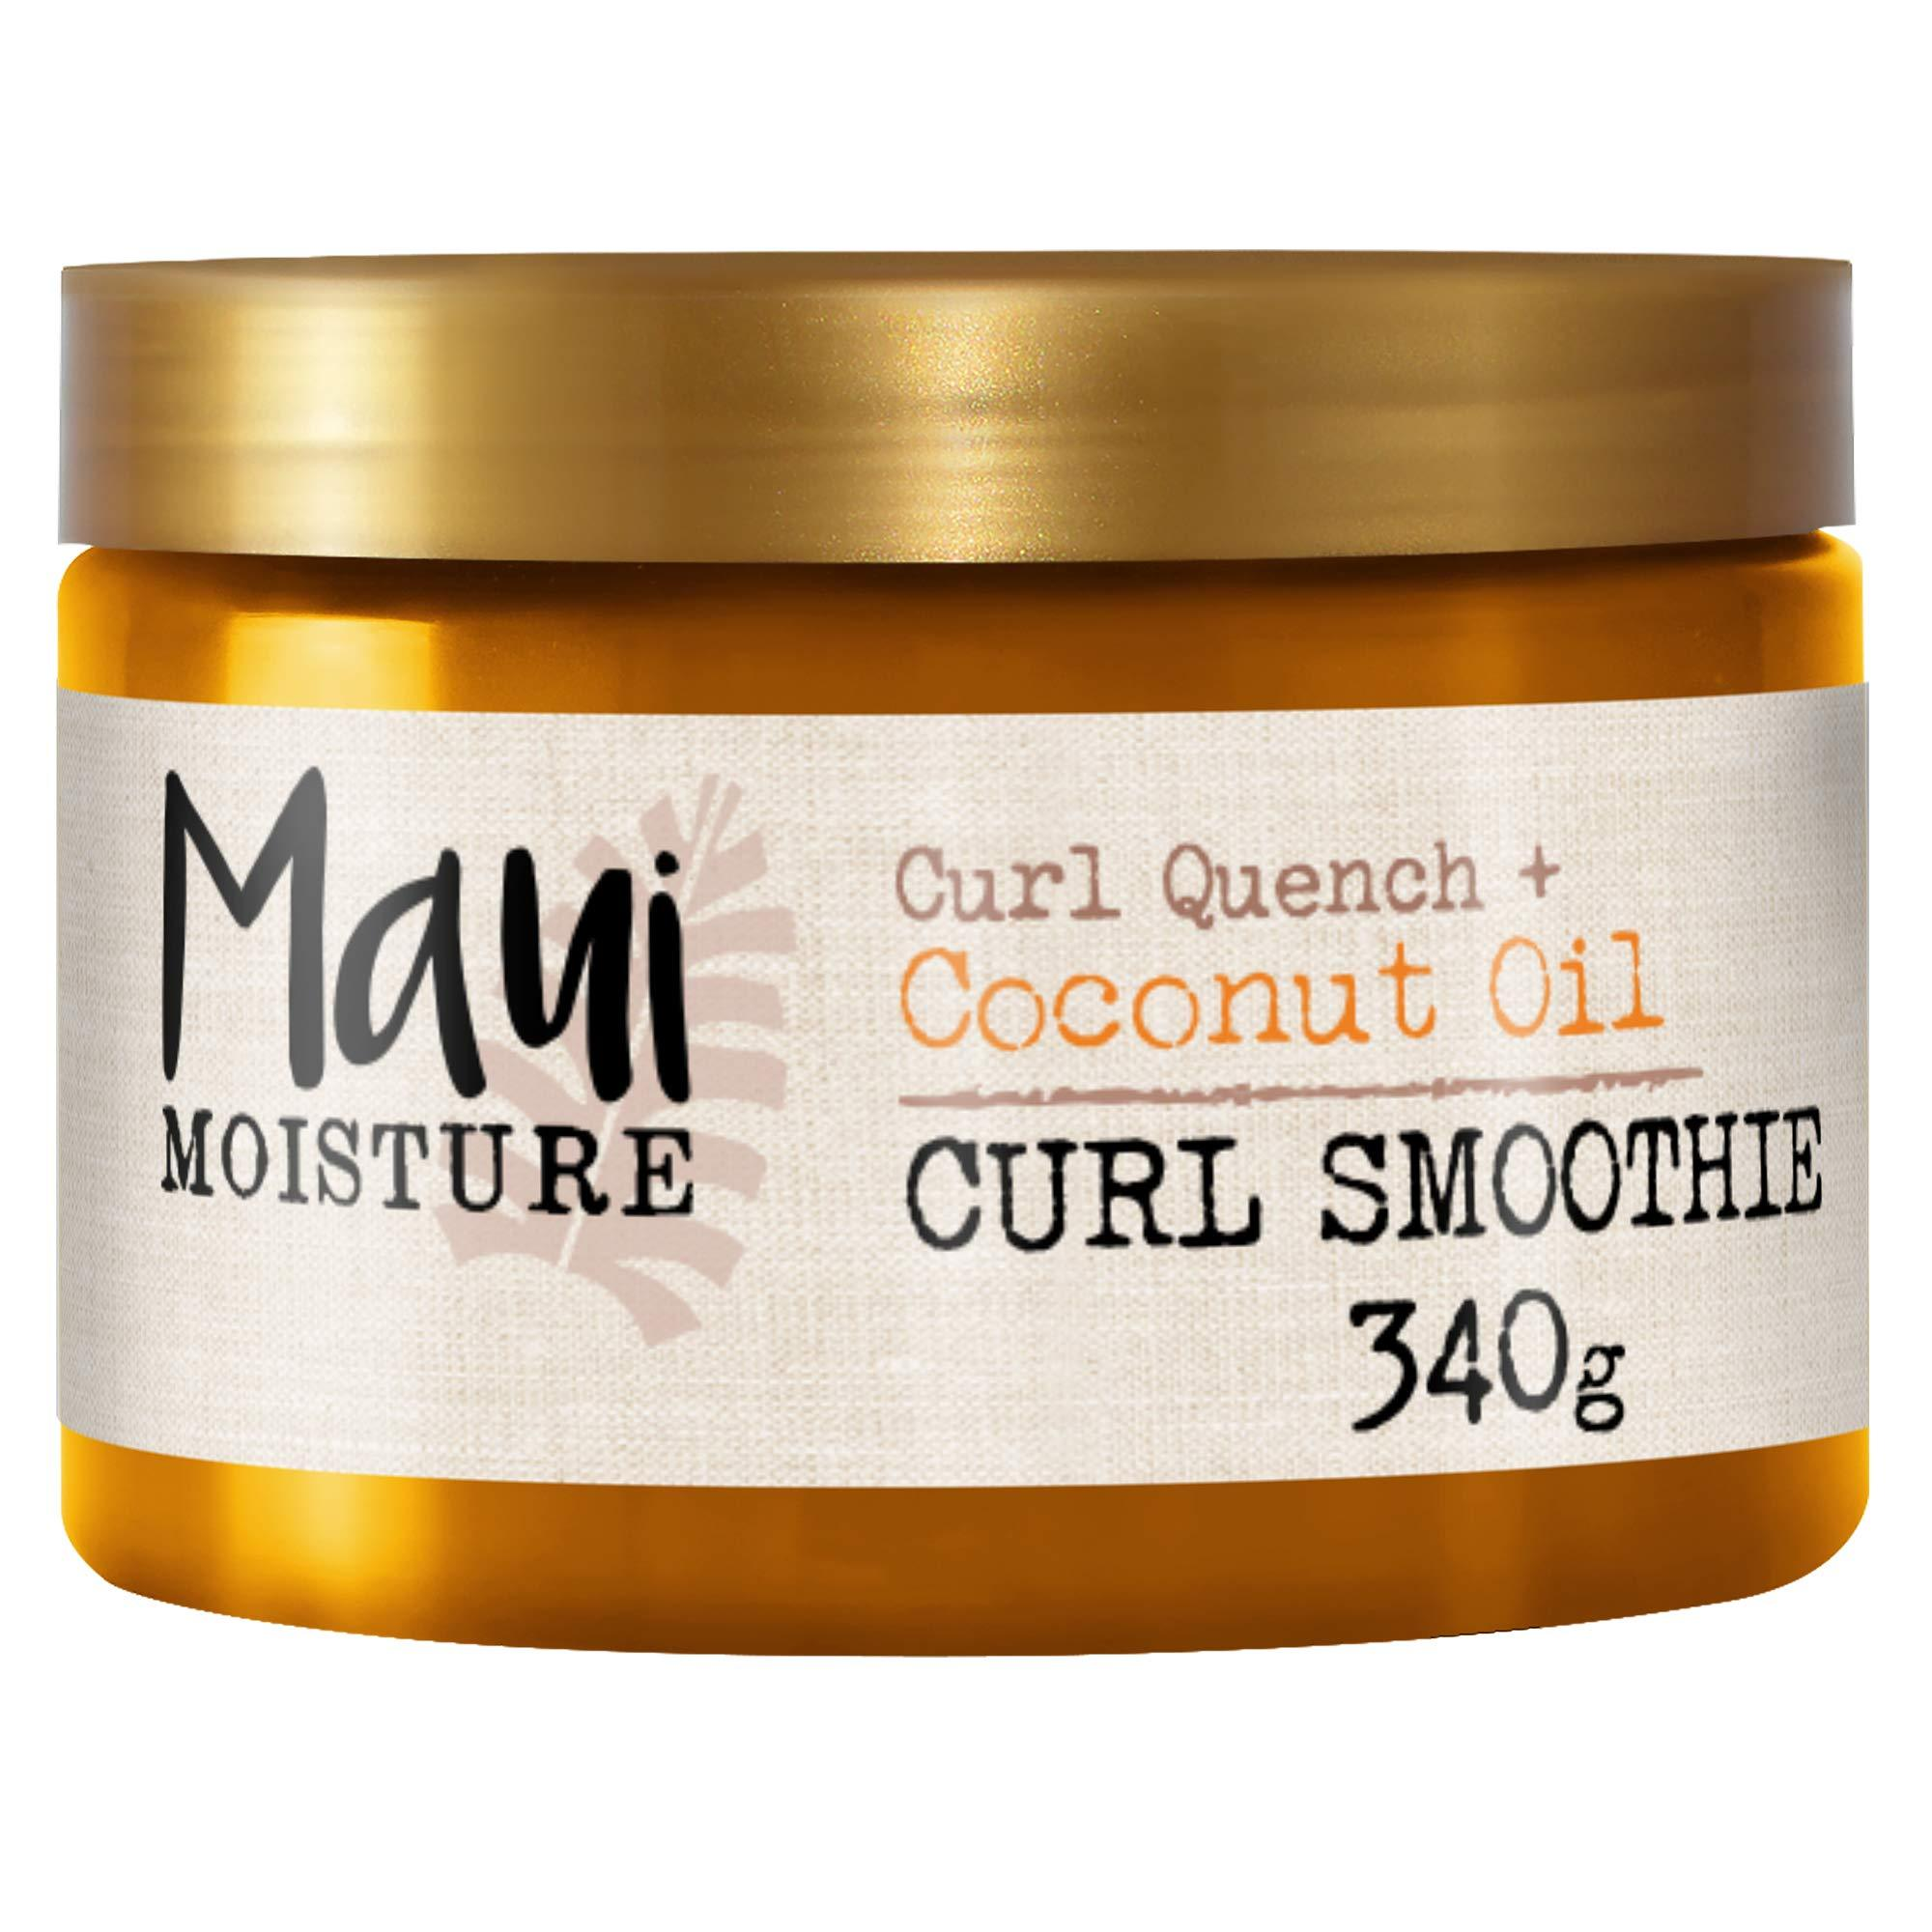 Maui Moisture Curl Quench + Coconut Oil Curl Smoothie, 340g